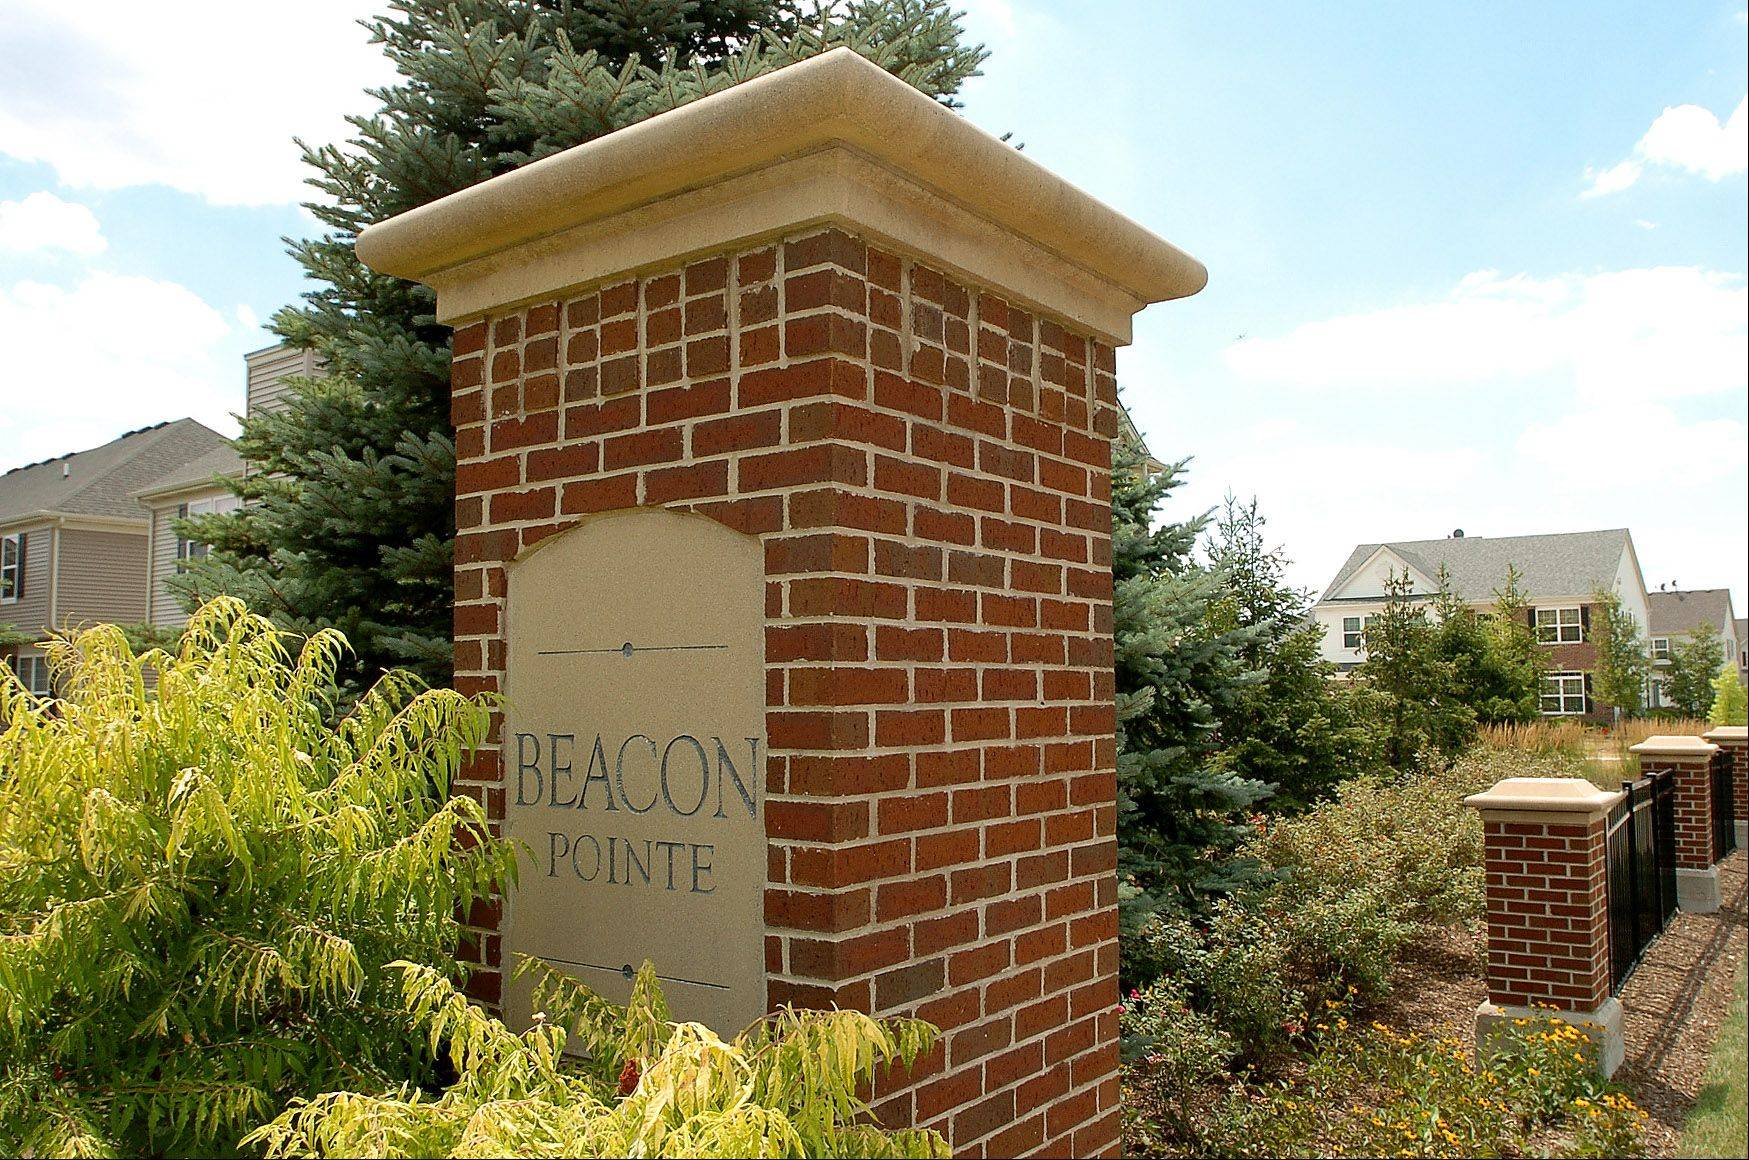 The entry monument sets the tone for Beacon Pointe.